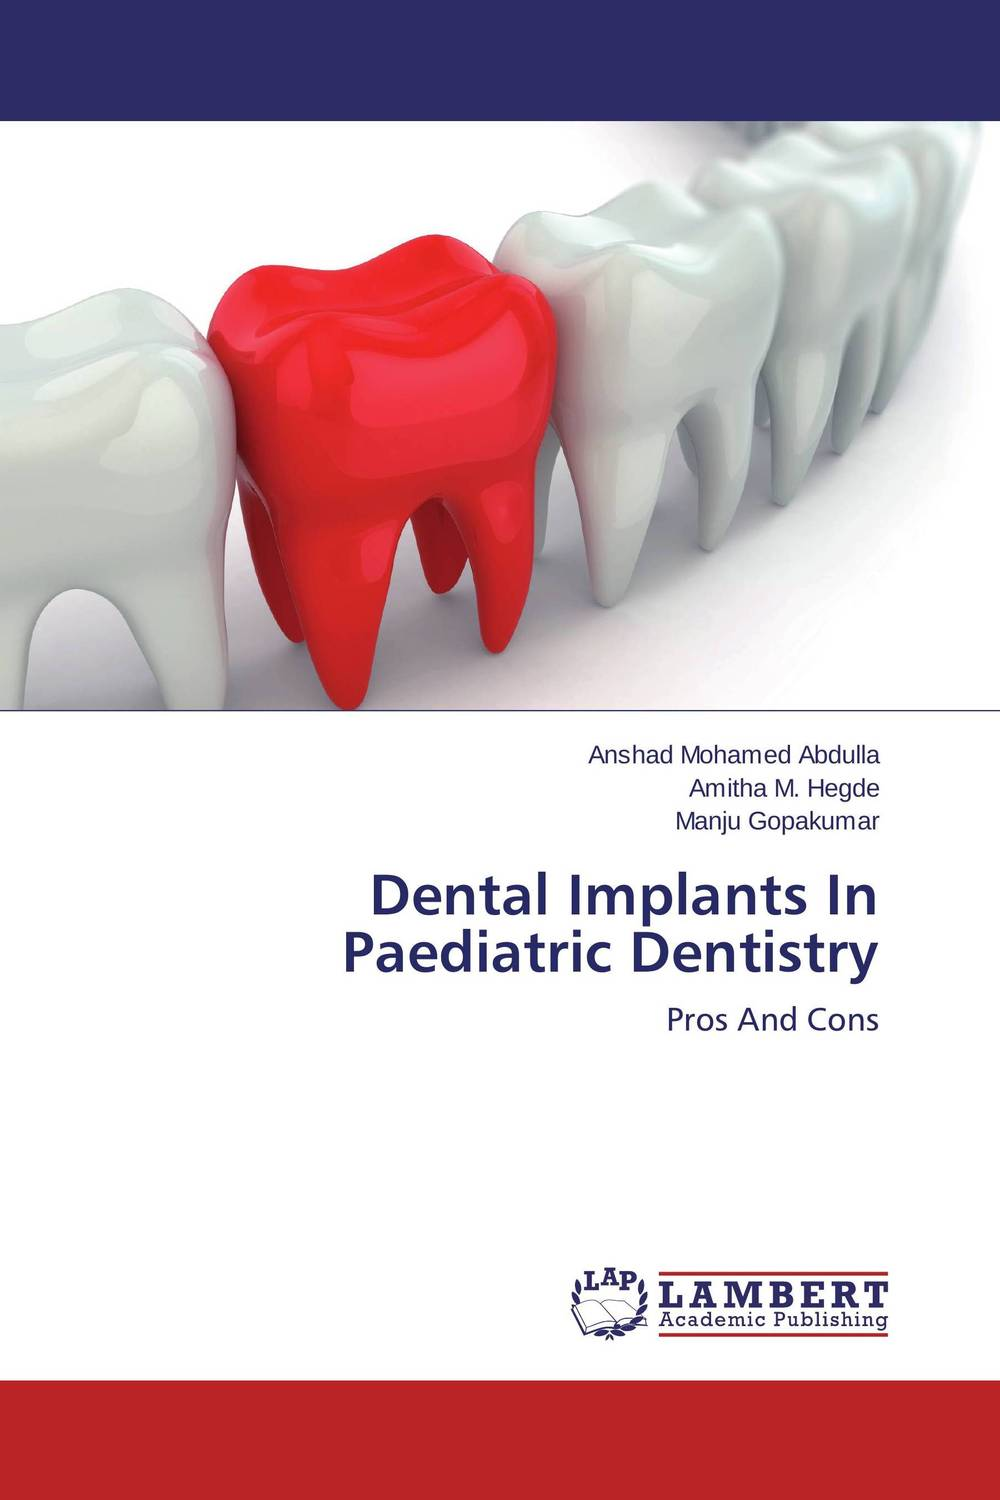 Dental Implants In Paediatric Dentistry книги эксмо сыны анархии братва